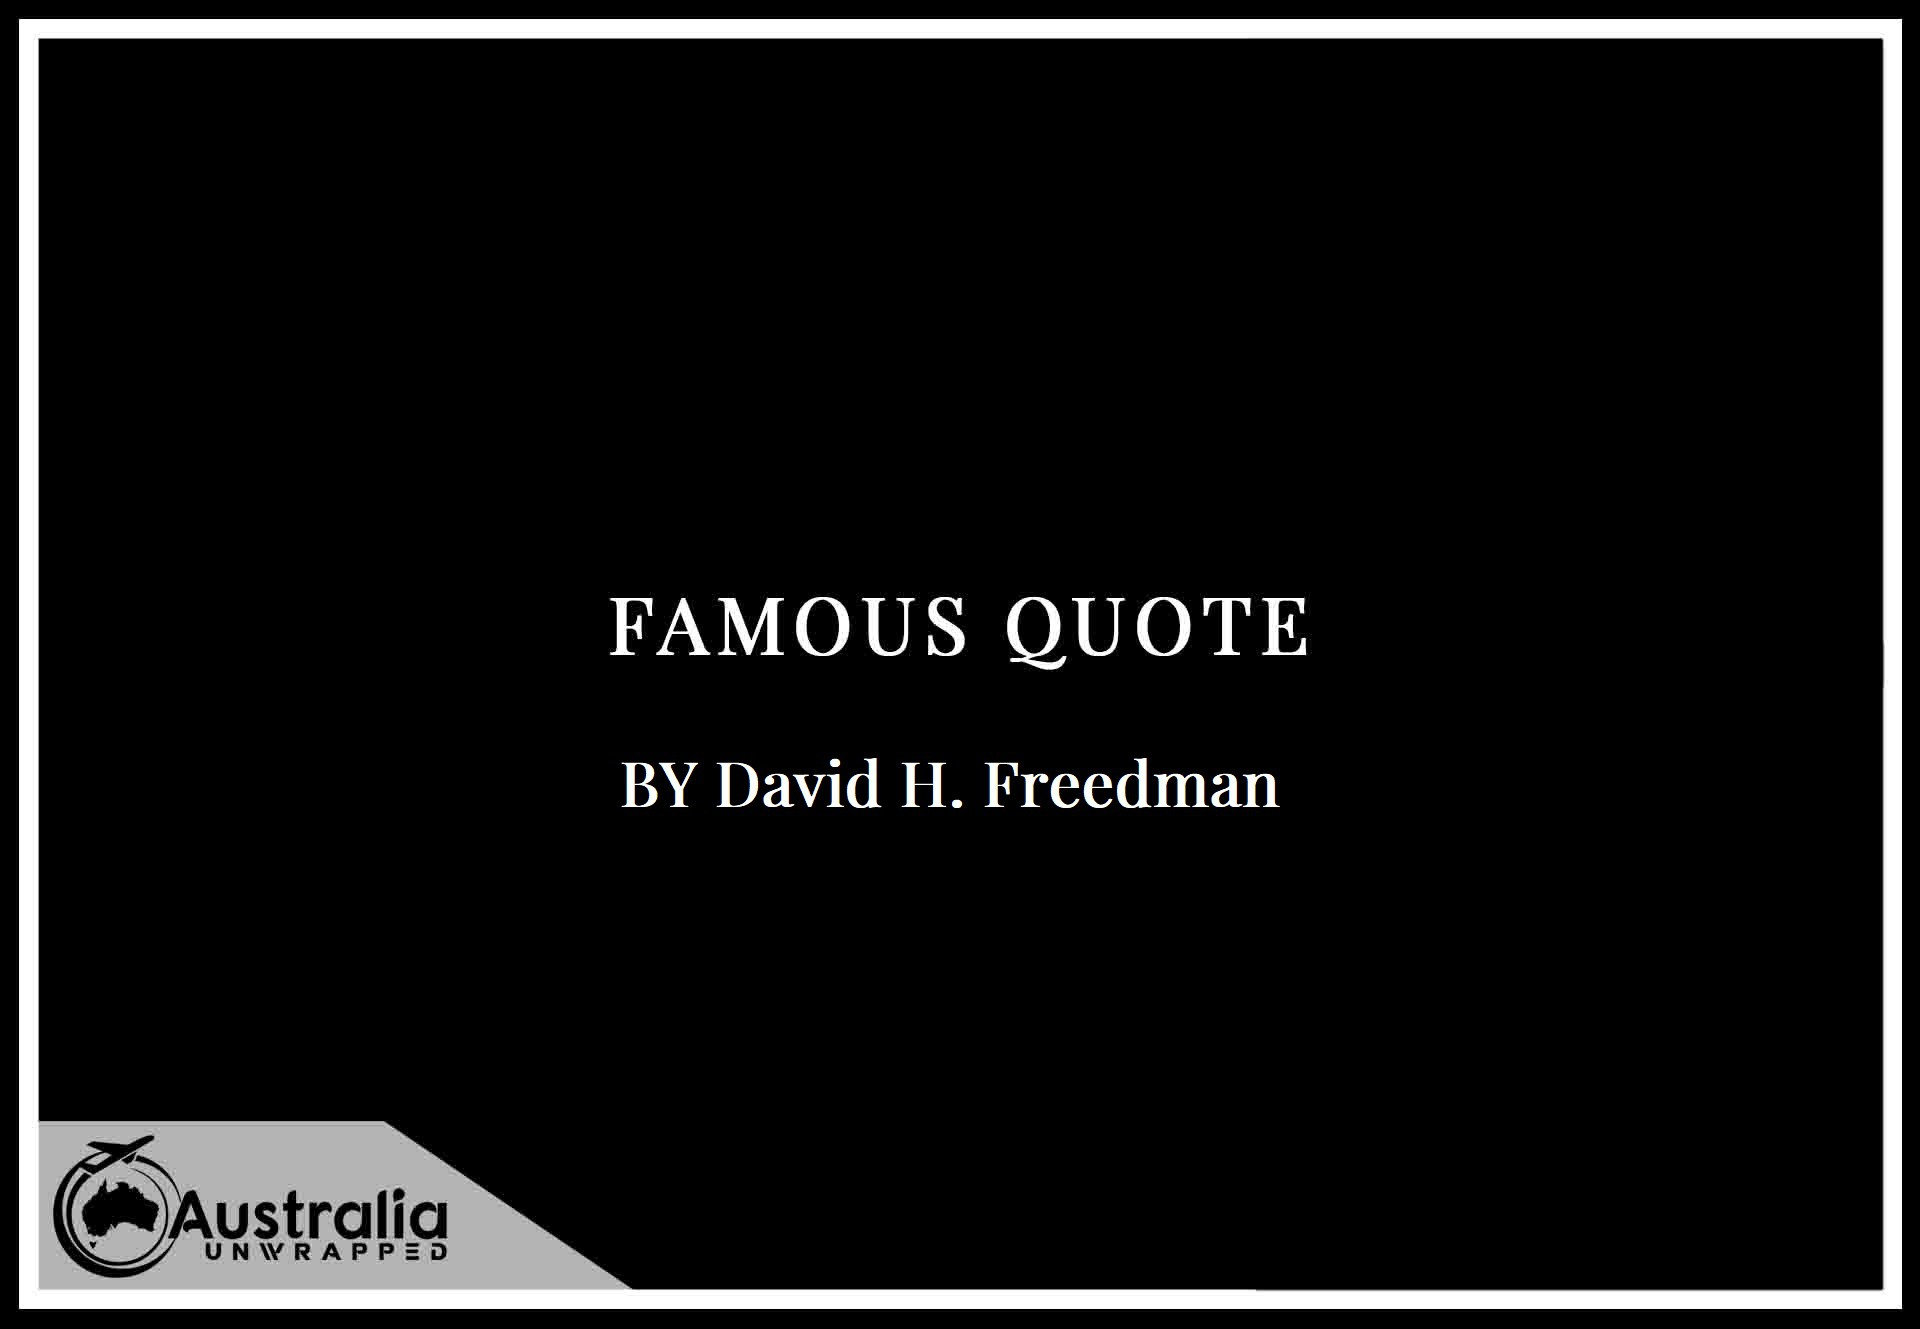 Top 1 Famous Quotes by Author David H. Freedman